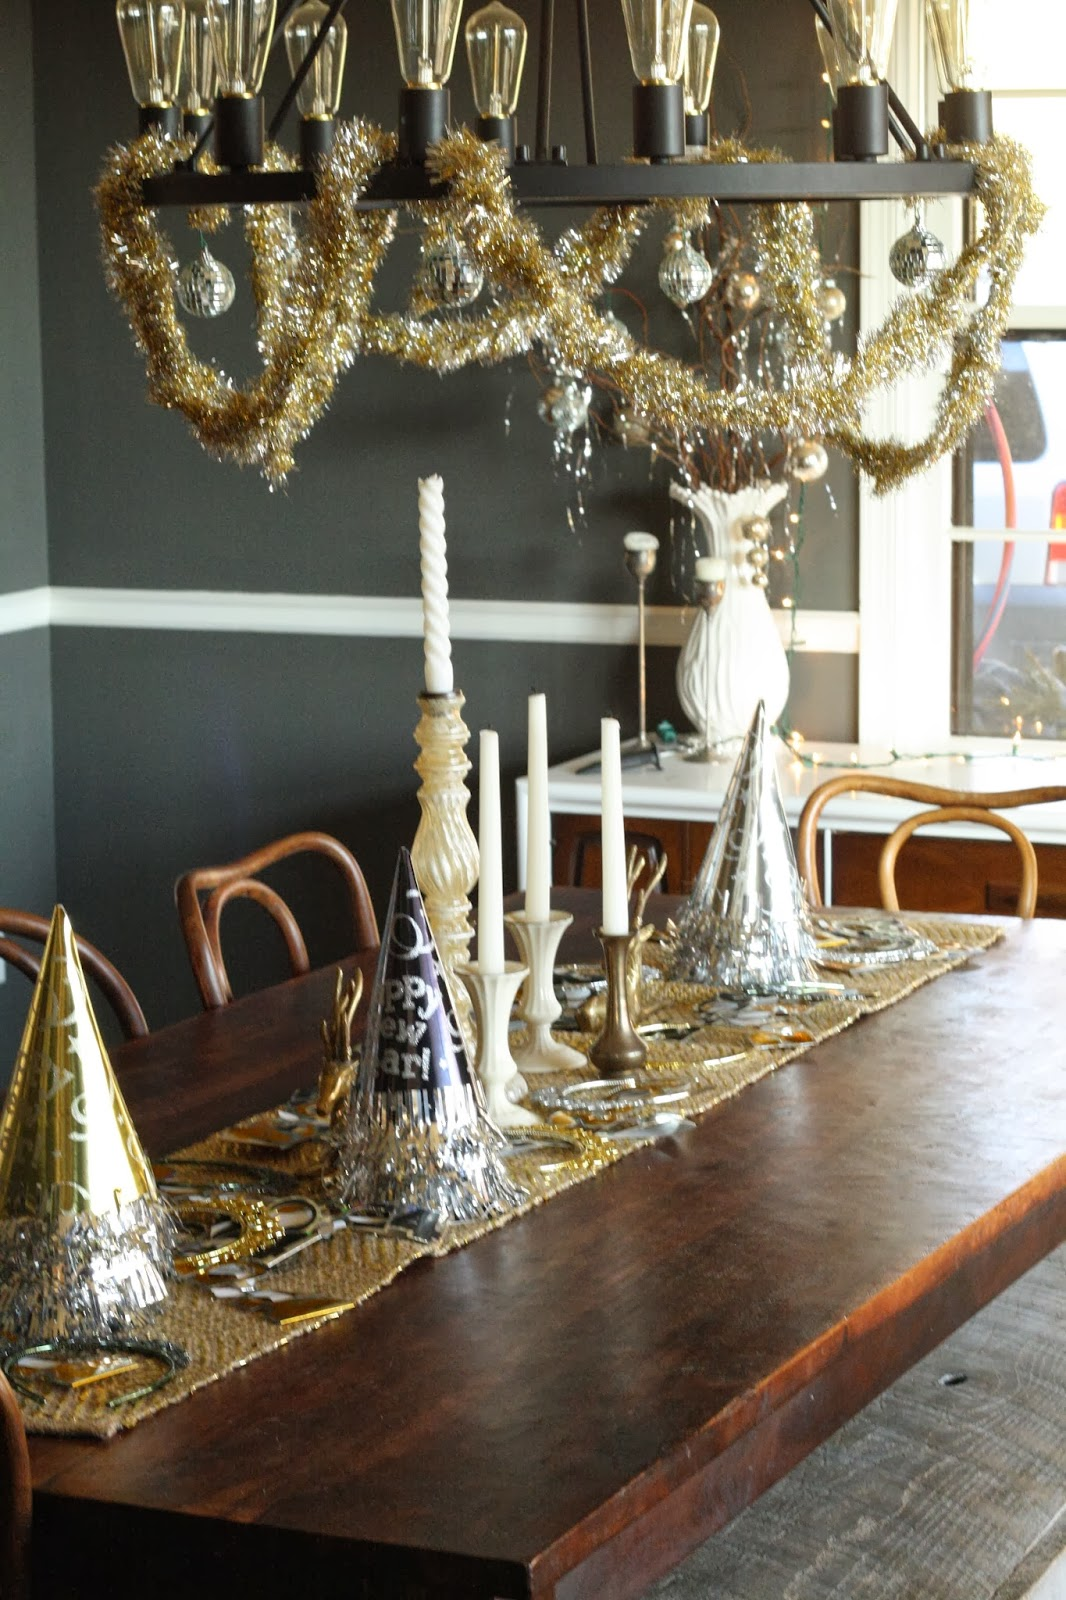 DIY New Year's Eve Decorations - Rent.com Blog